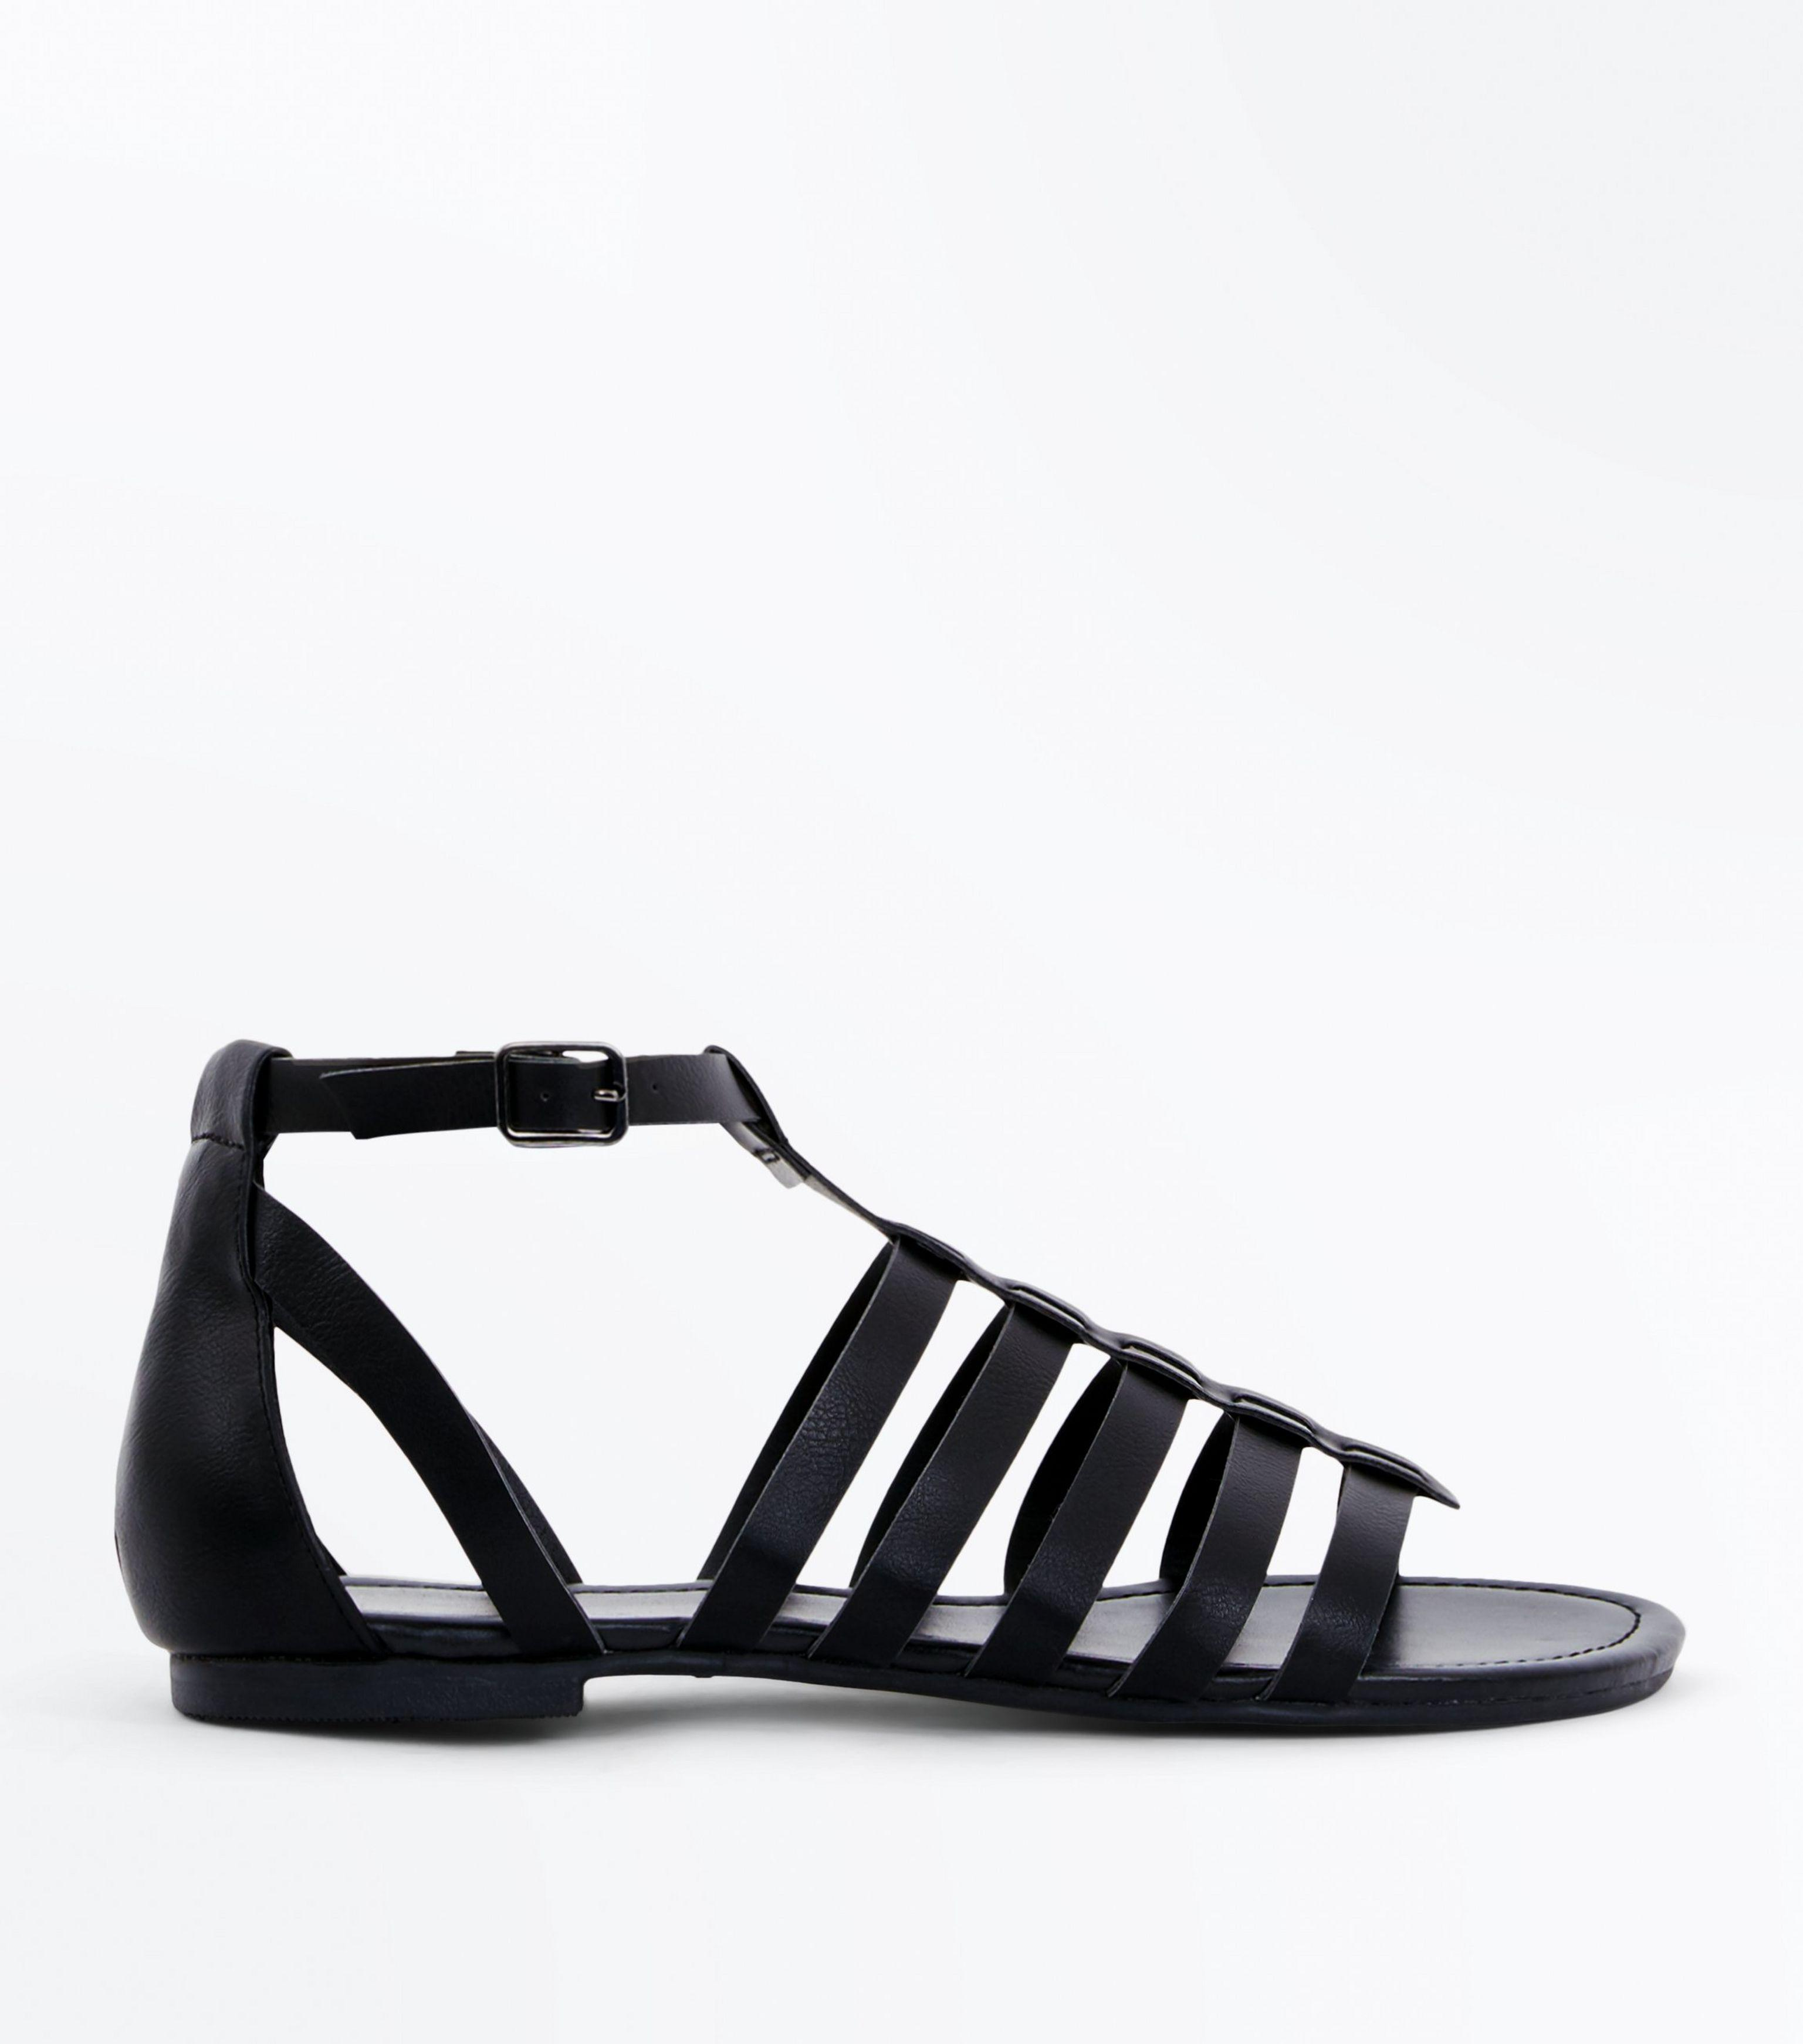 paraninfo Escrementi Morte  New Look Leather Wide Fit Black Gladiator Flat Sandals - Lyst